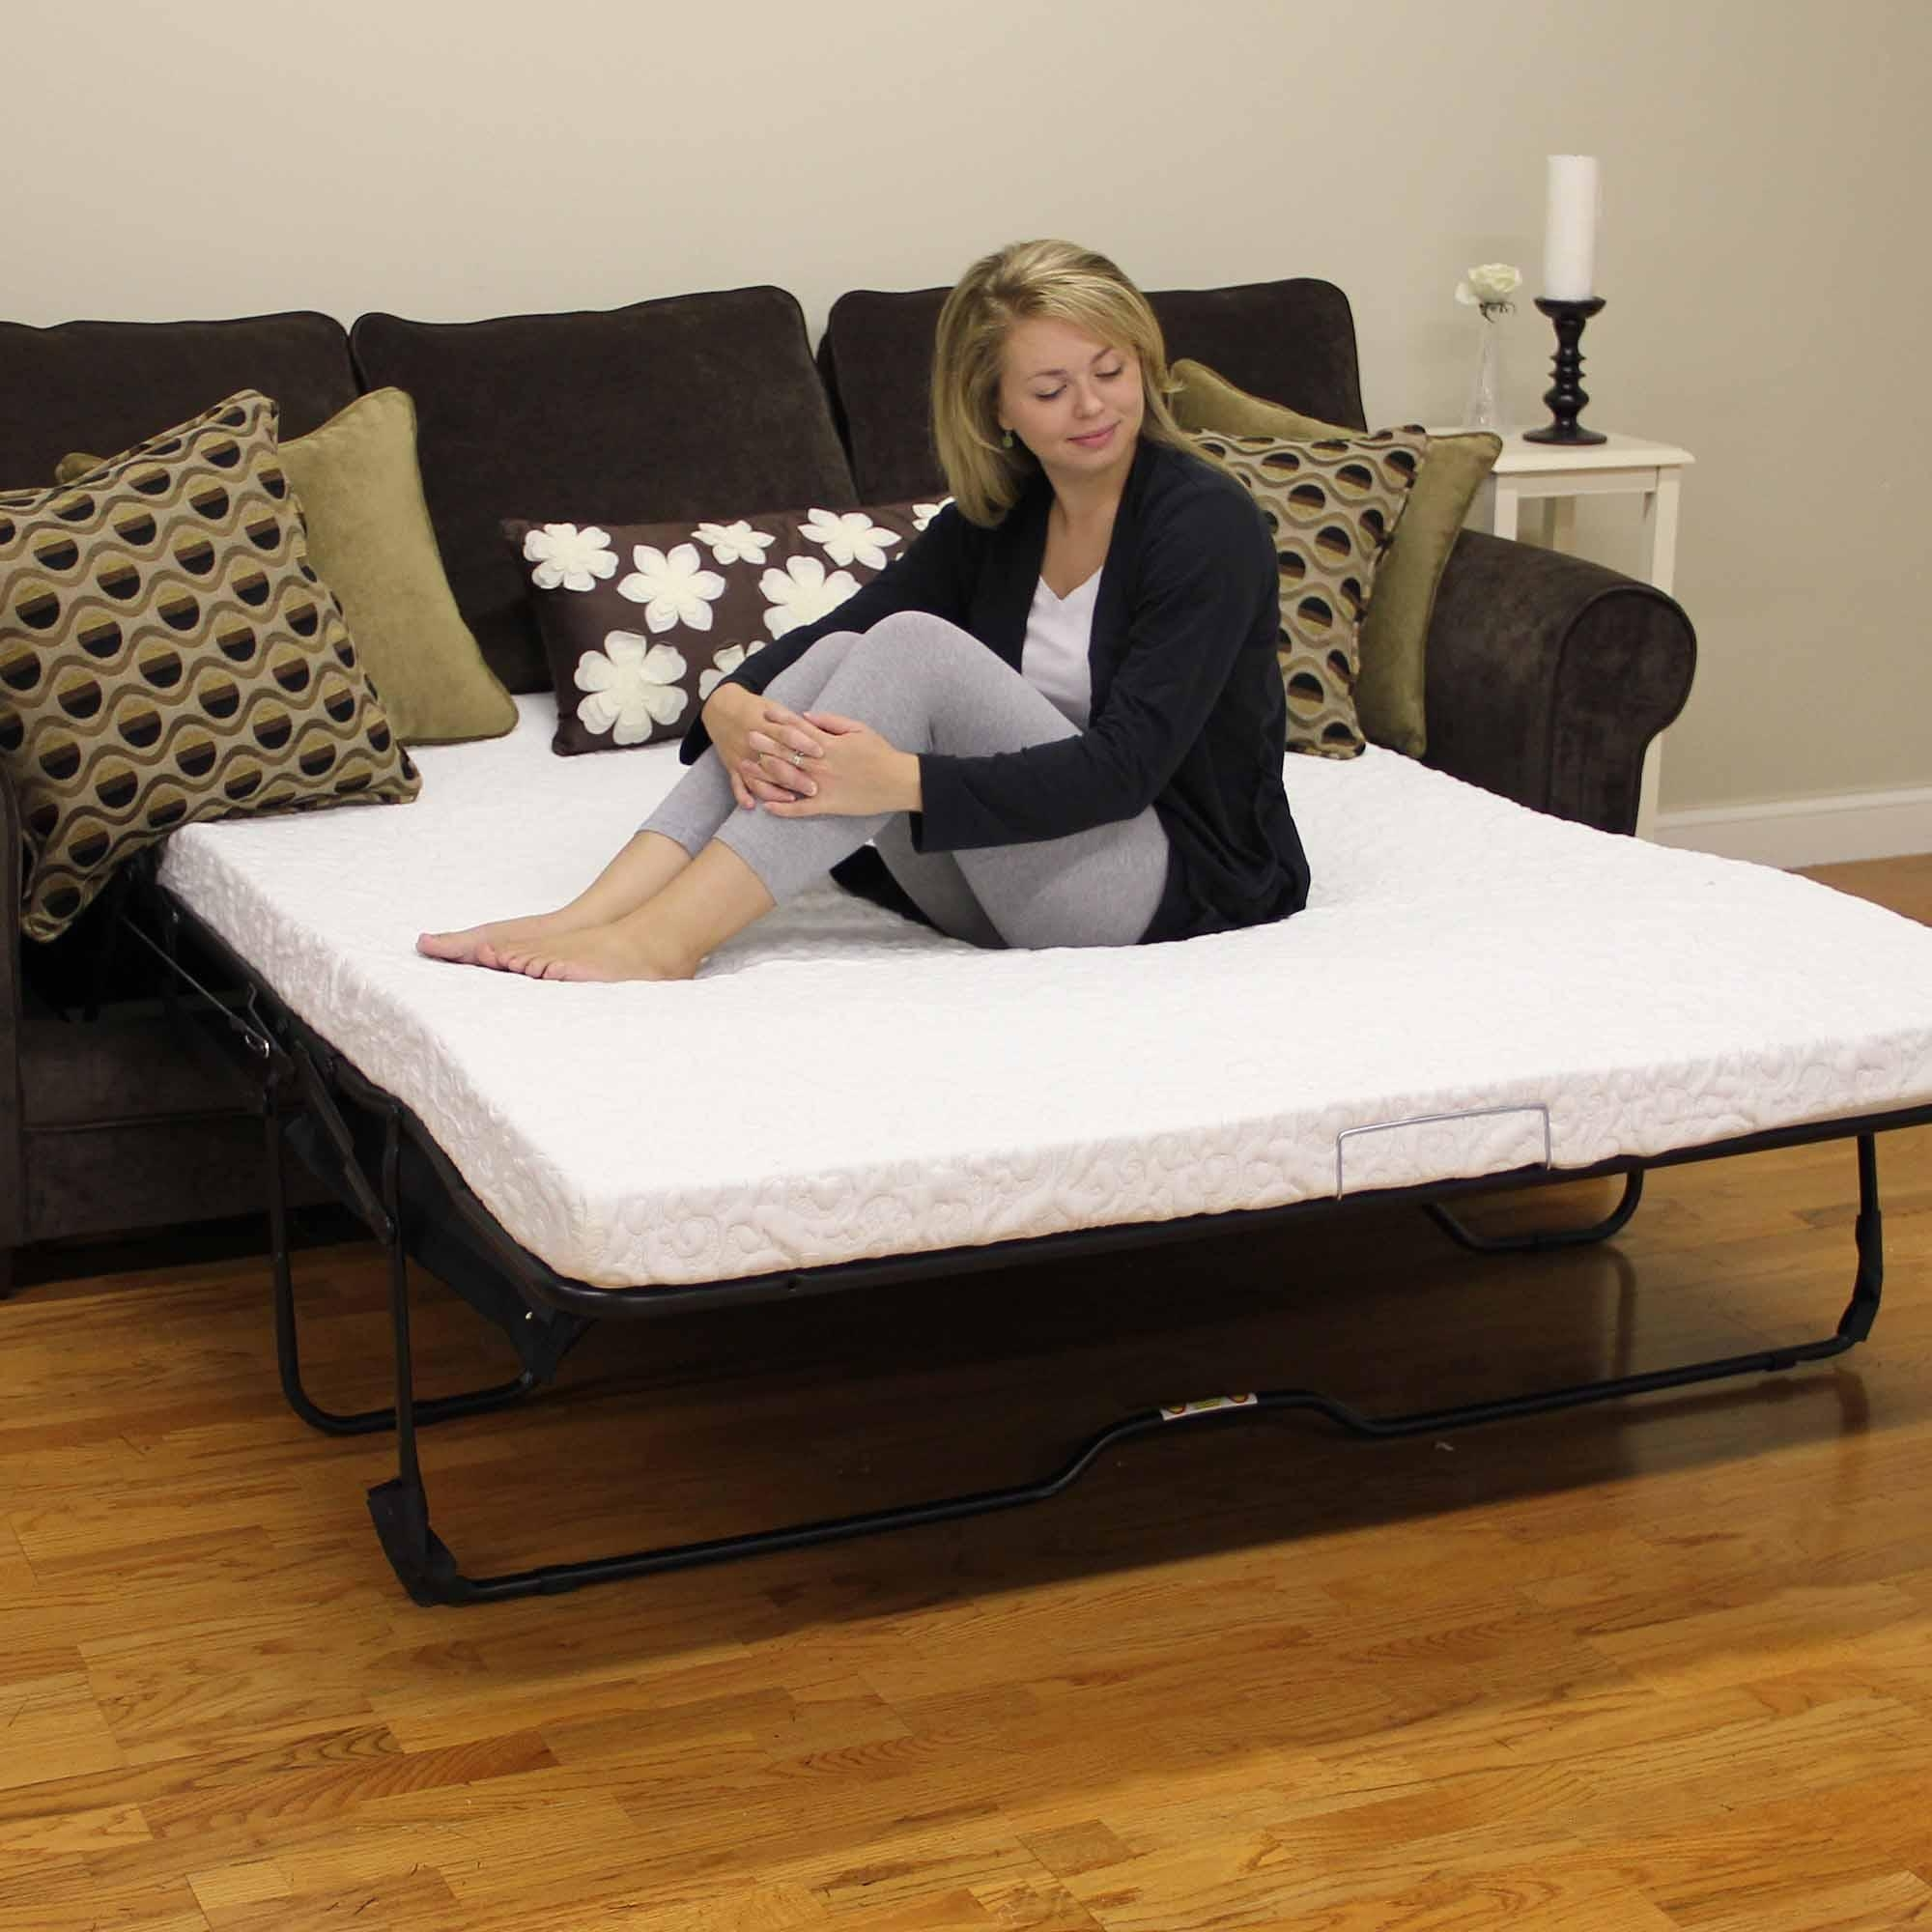 Futon Beds Queen Size | Tehranmix Decoration In Sleeper Sofas Mattress Covers (Image 1 of 20)